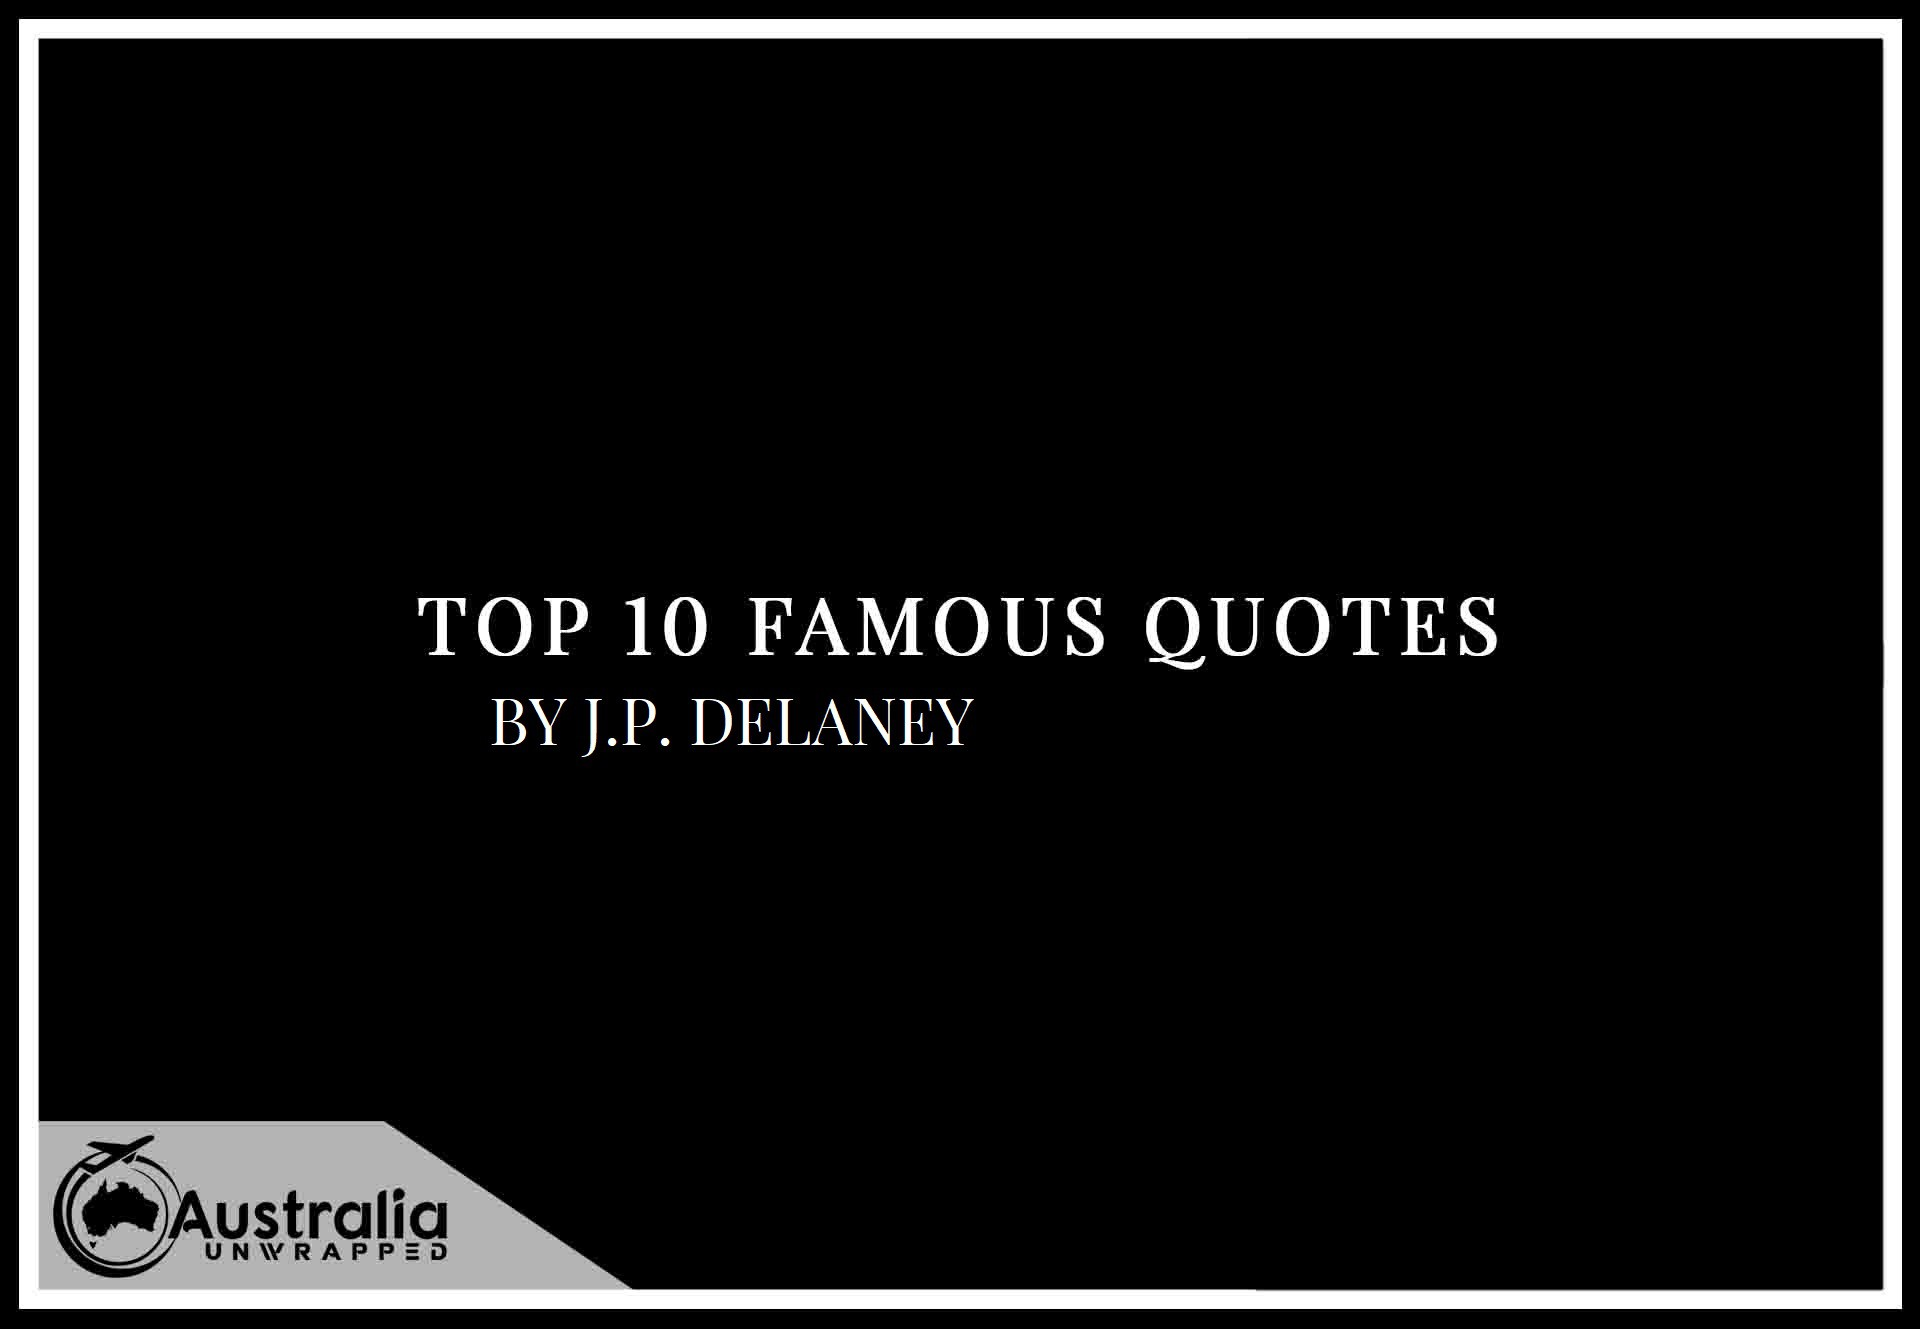 Top 10 Famous Quotes by Author J.P. Delaney